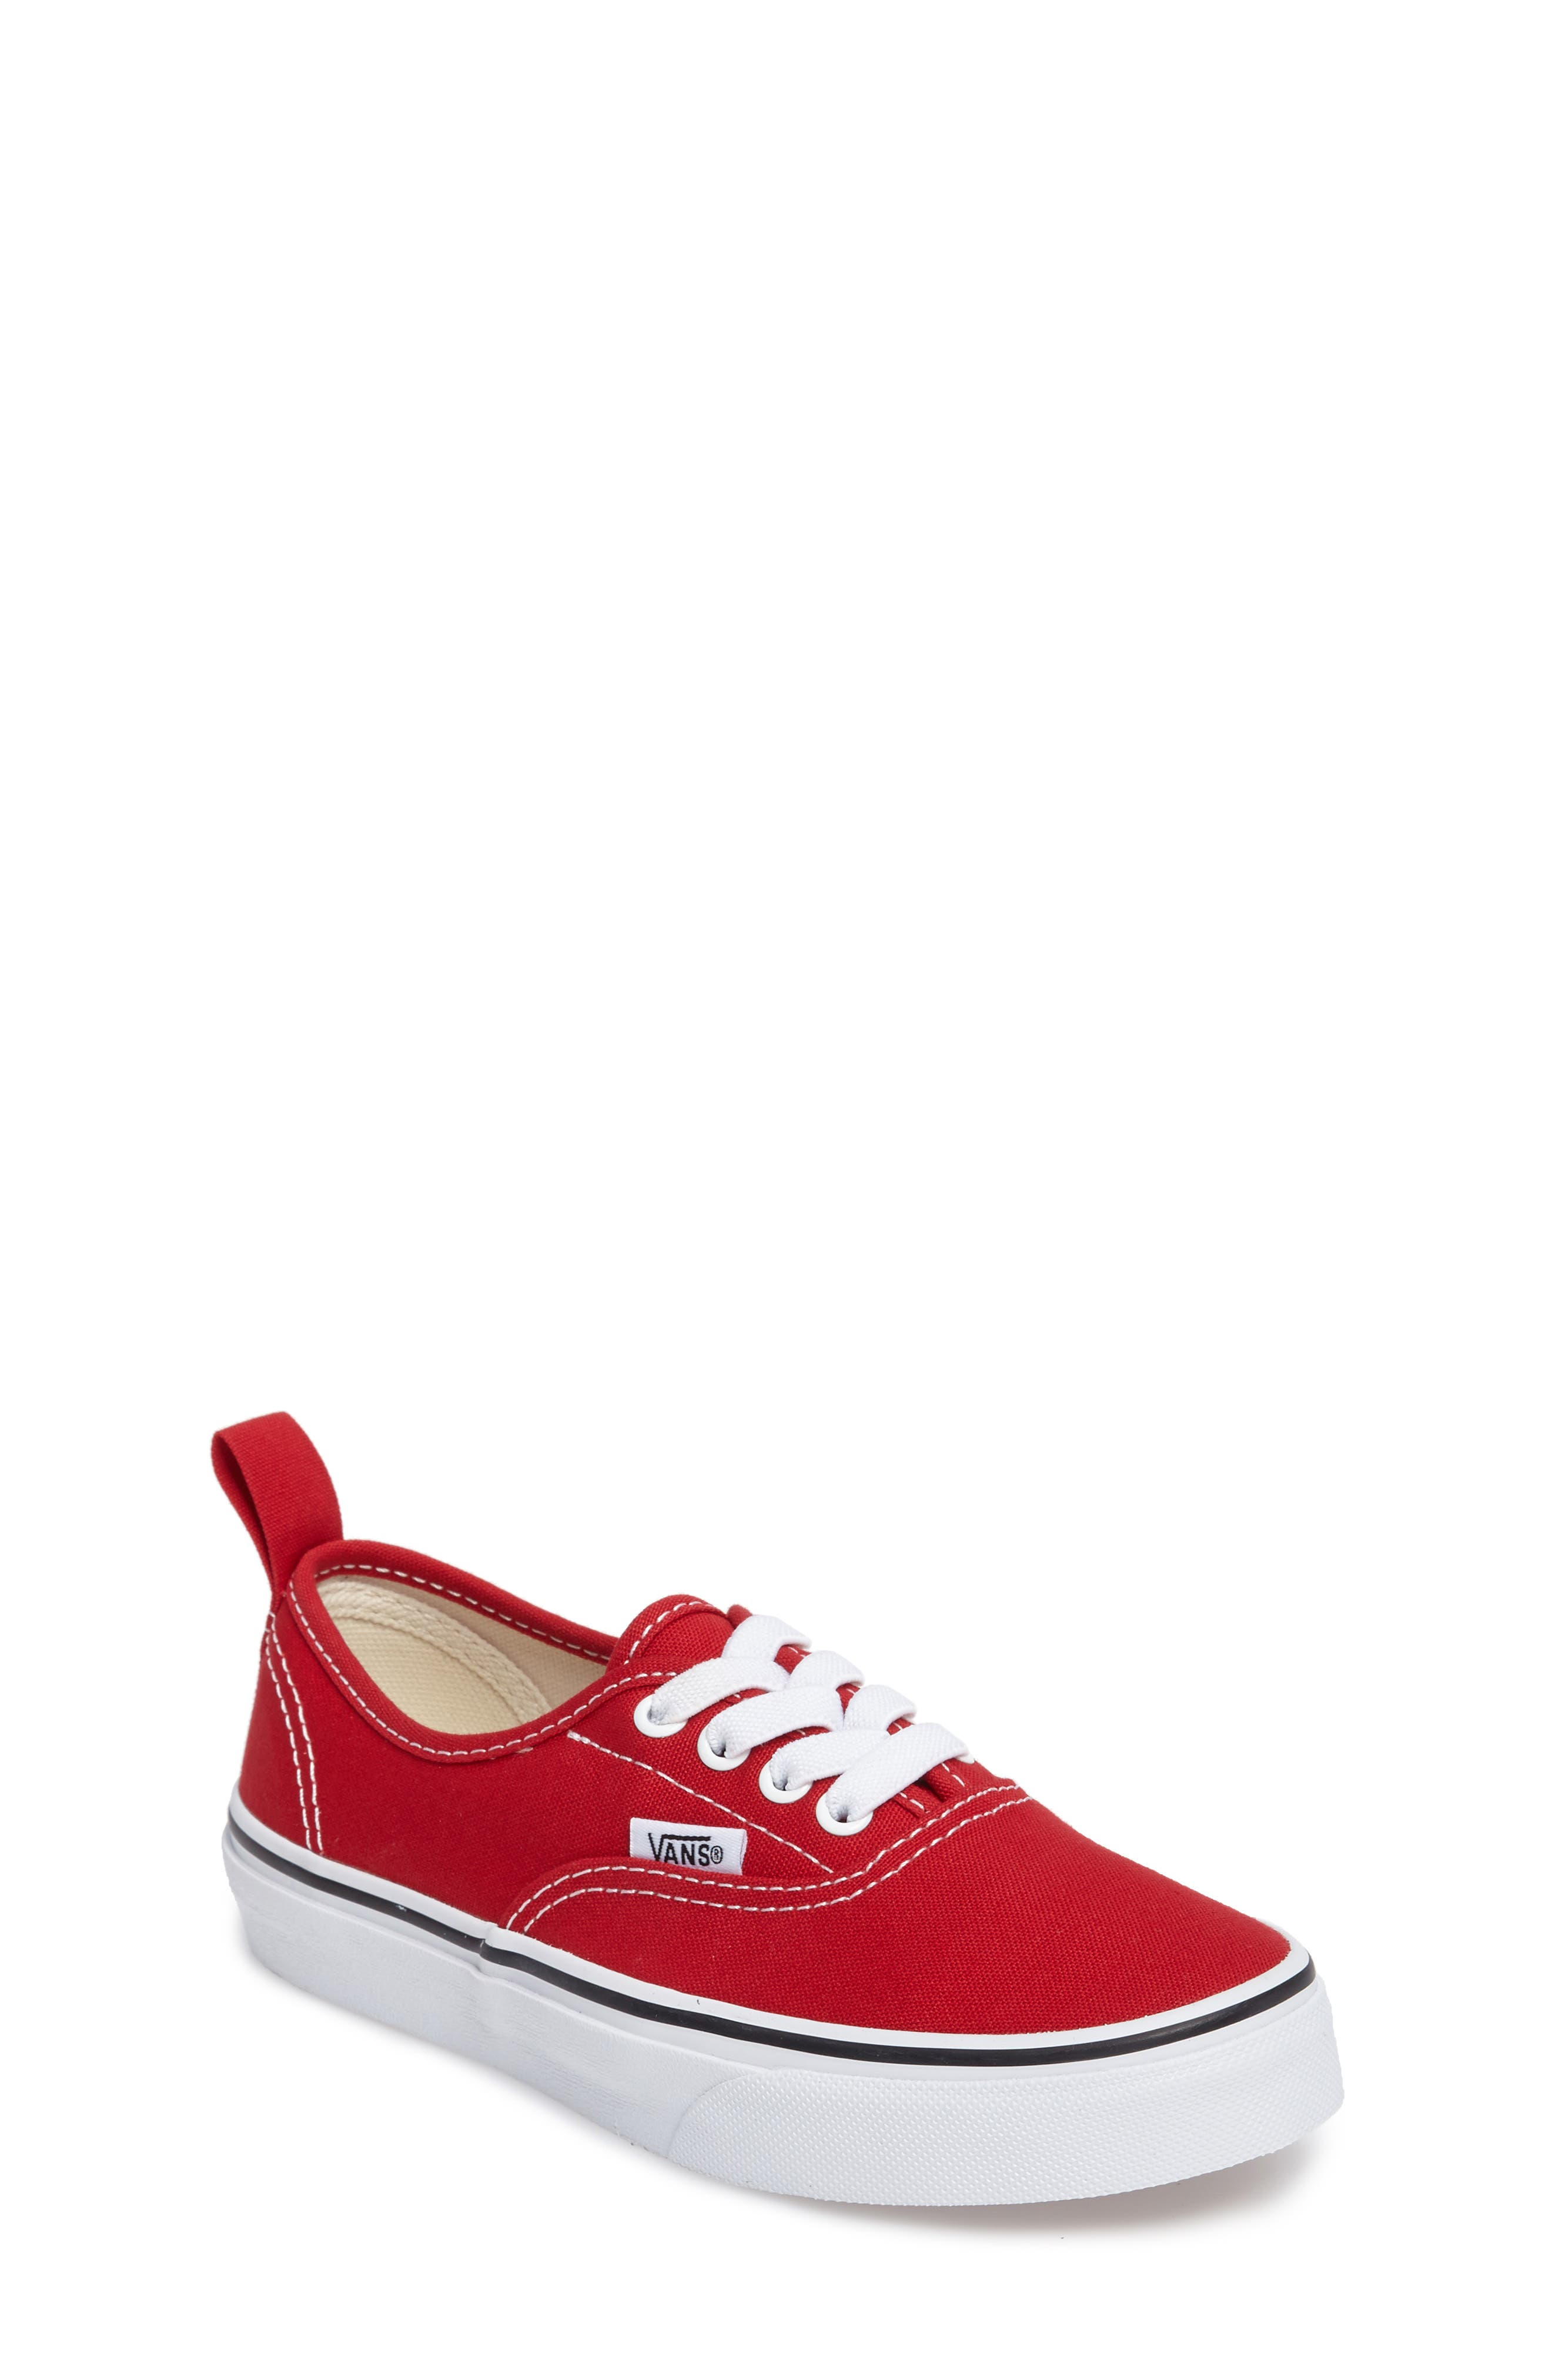 VANS, Authentic Sneaker, Main thumbnail 1, color, RACING RED/ TRUE WHITE